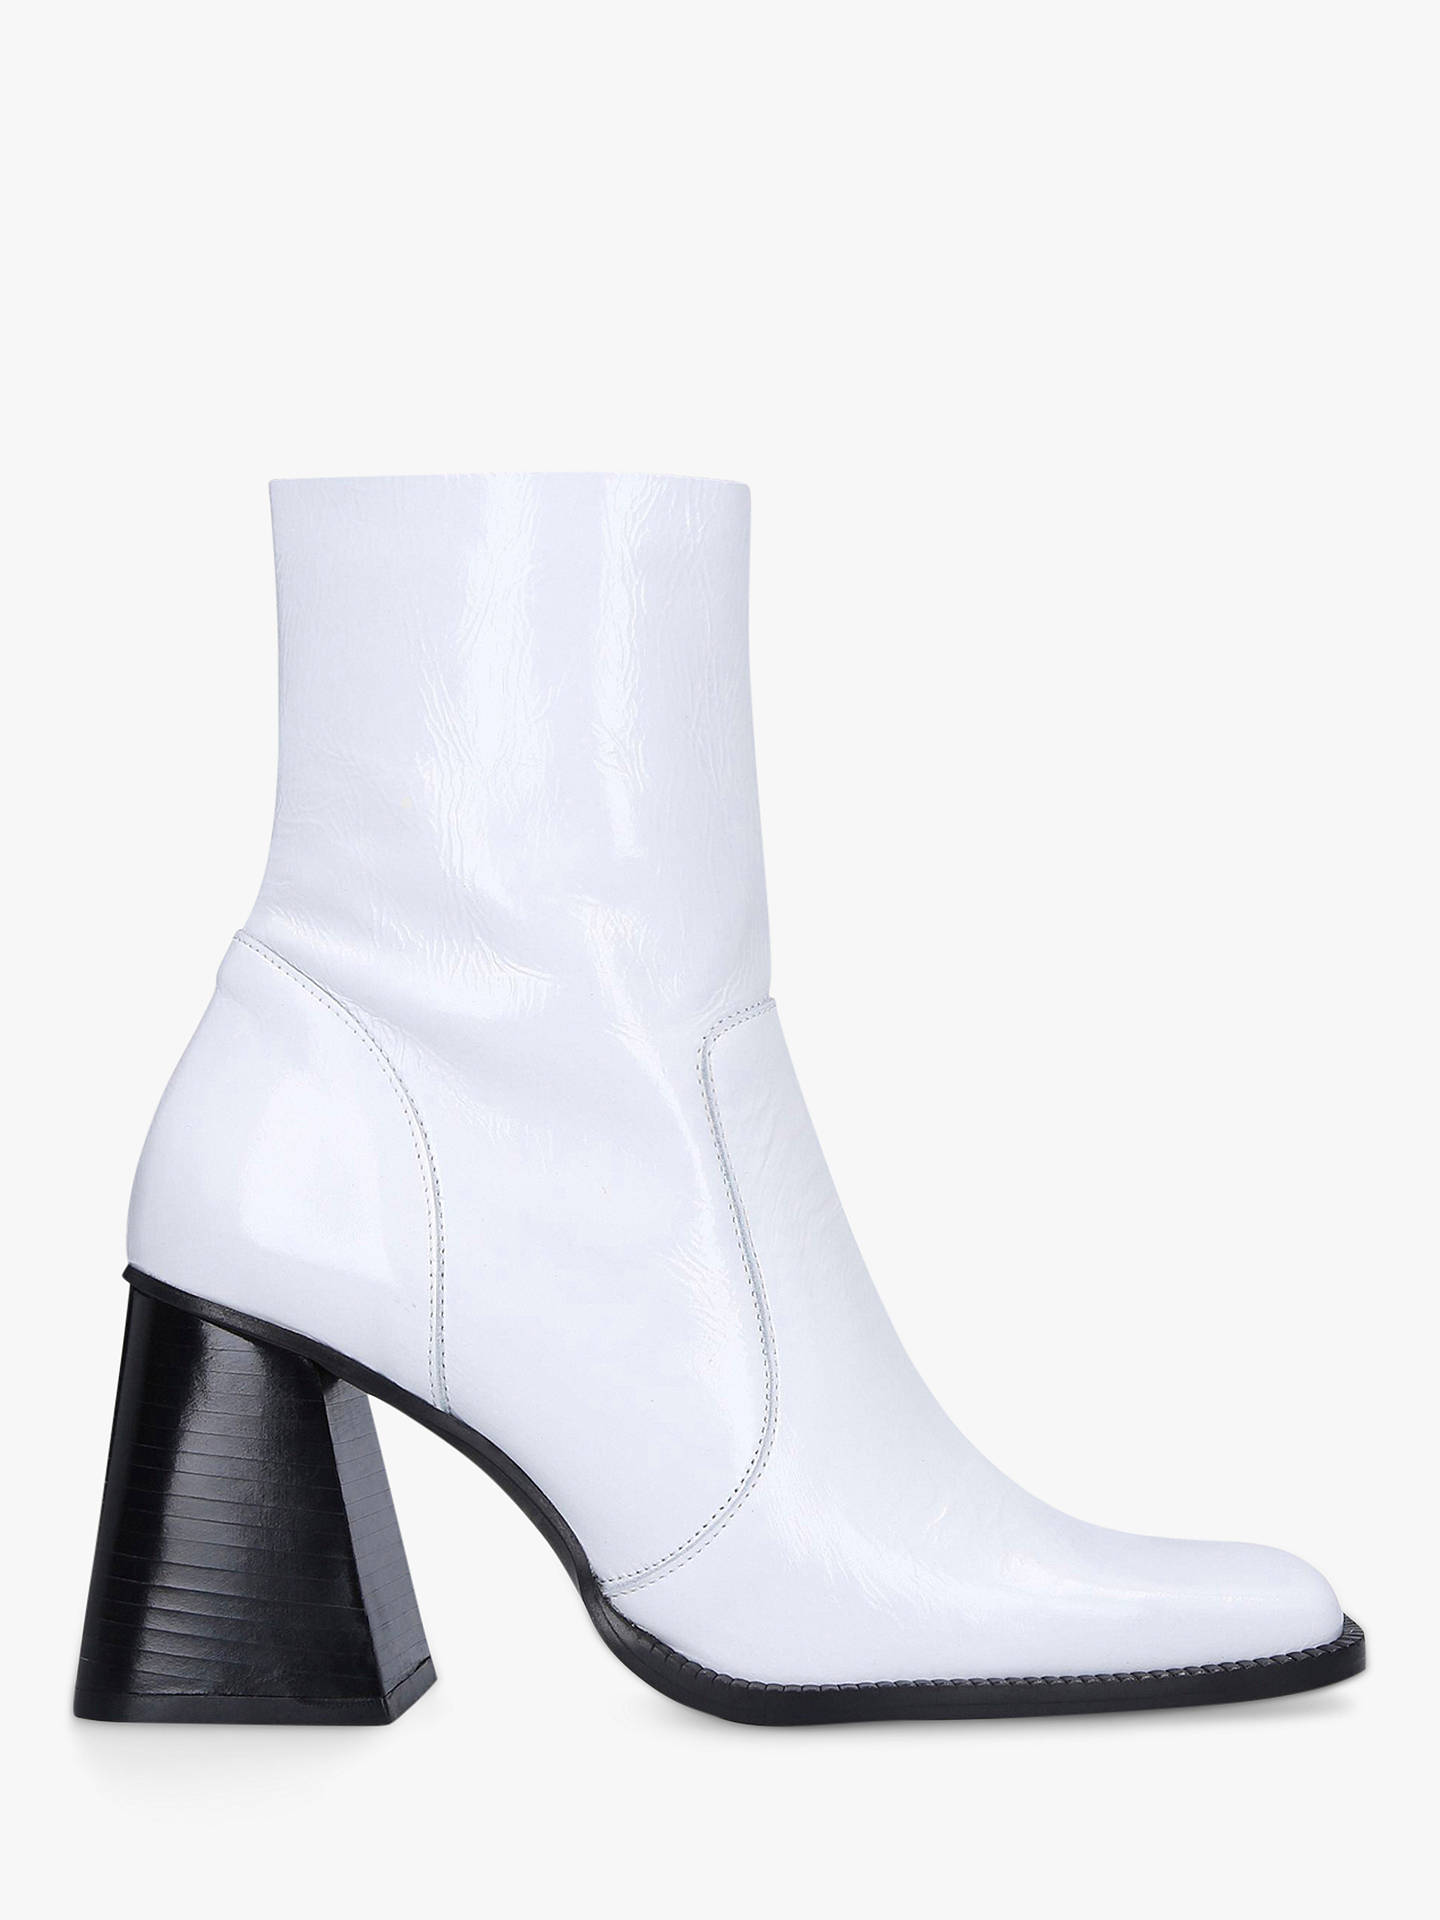 Buy Kurt Geiger London Selma Leather Square Heel Ankle Boots, White, 3 Online at johnlewis.com